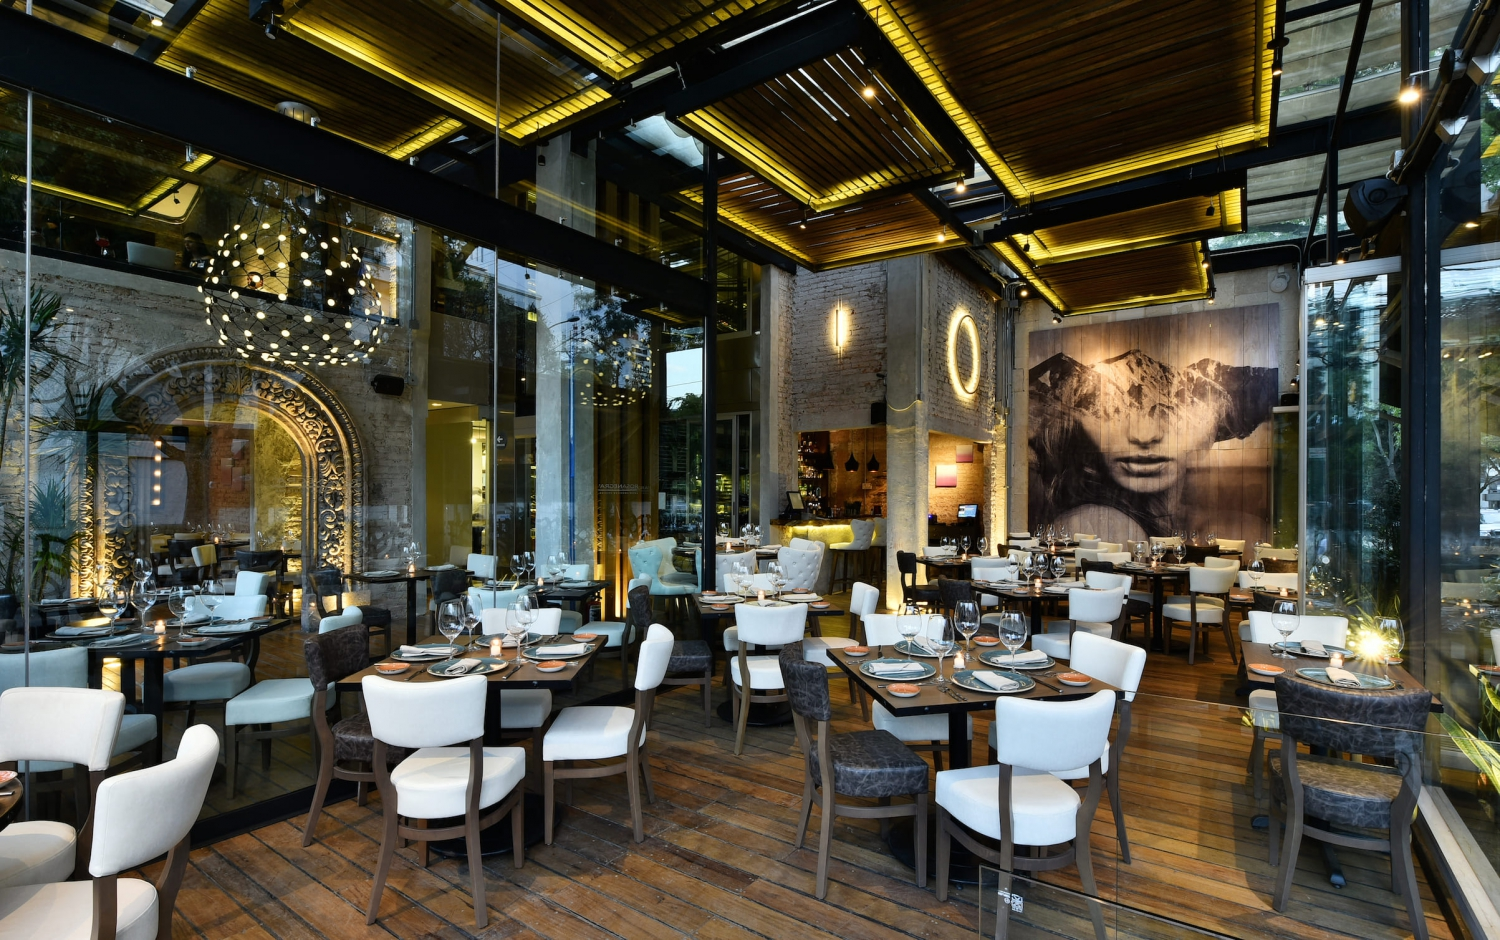 The best restaurants in Mexico City